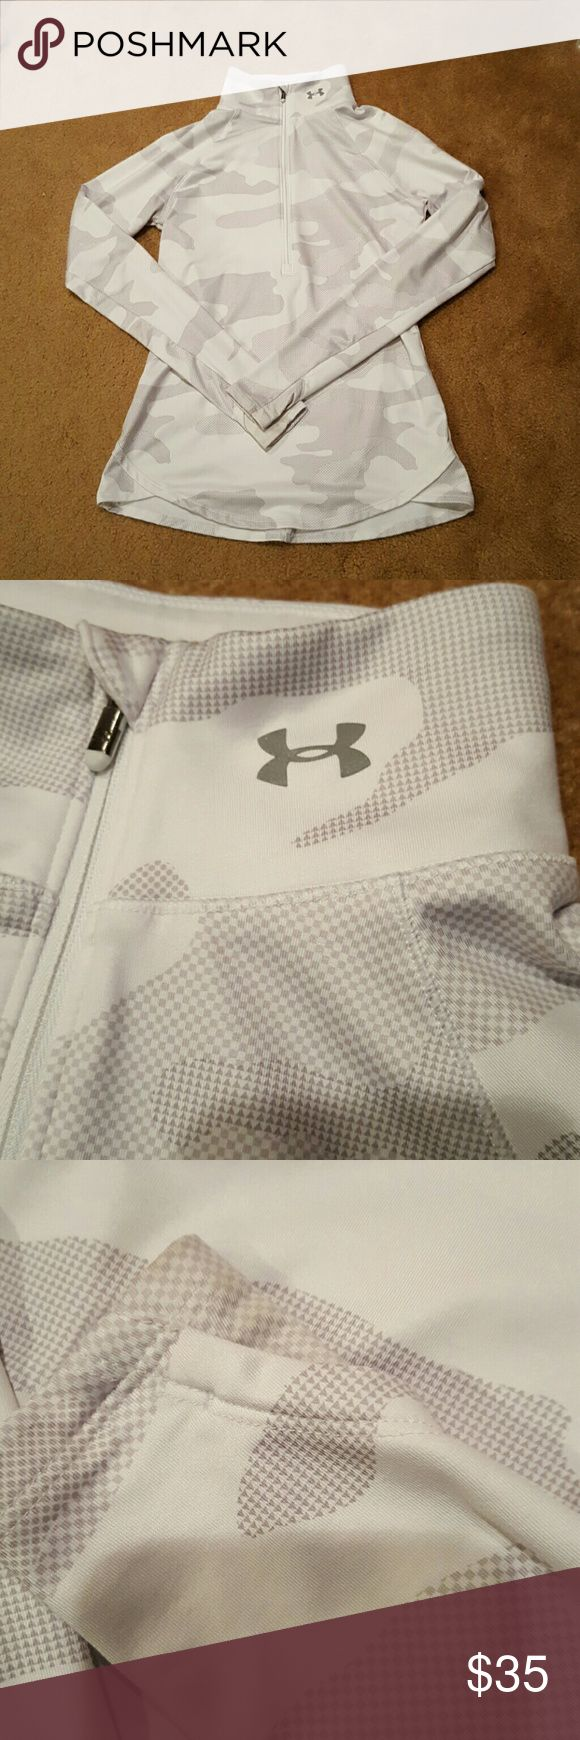 Under Armour half compression zip jacket White and silver Under Armour half zip compression sports jacket. Price is always negotiable but no lowballing please Under Armour Jackets & Coats